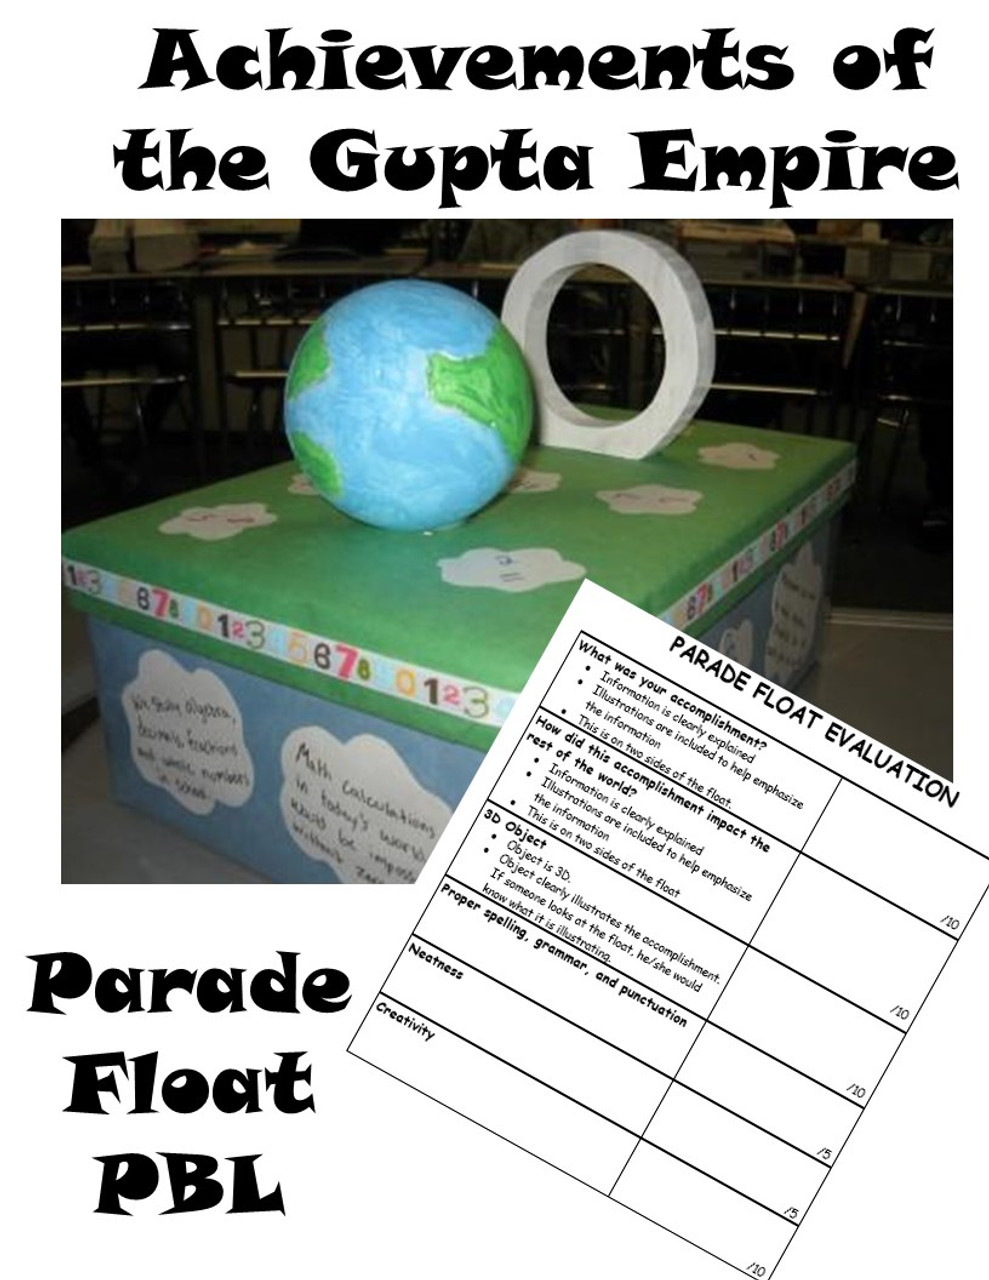 PBL- Gupta Empire Parade Float - Ancient Indian Inventions and Discoveries